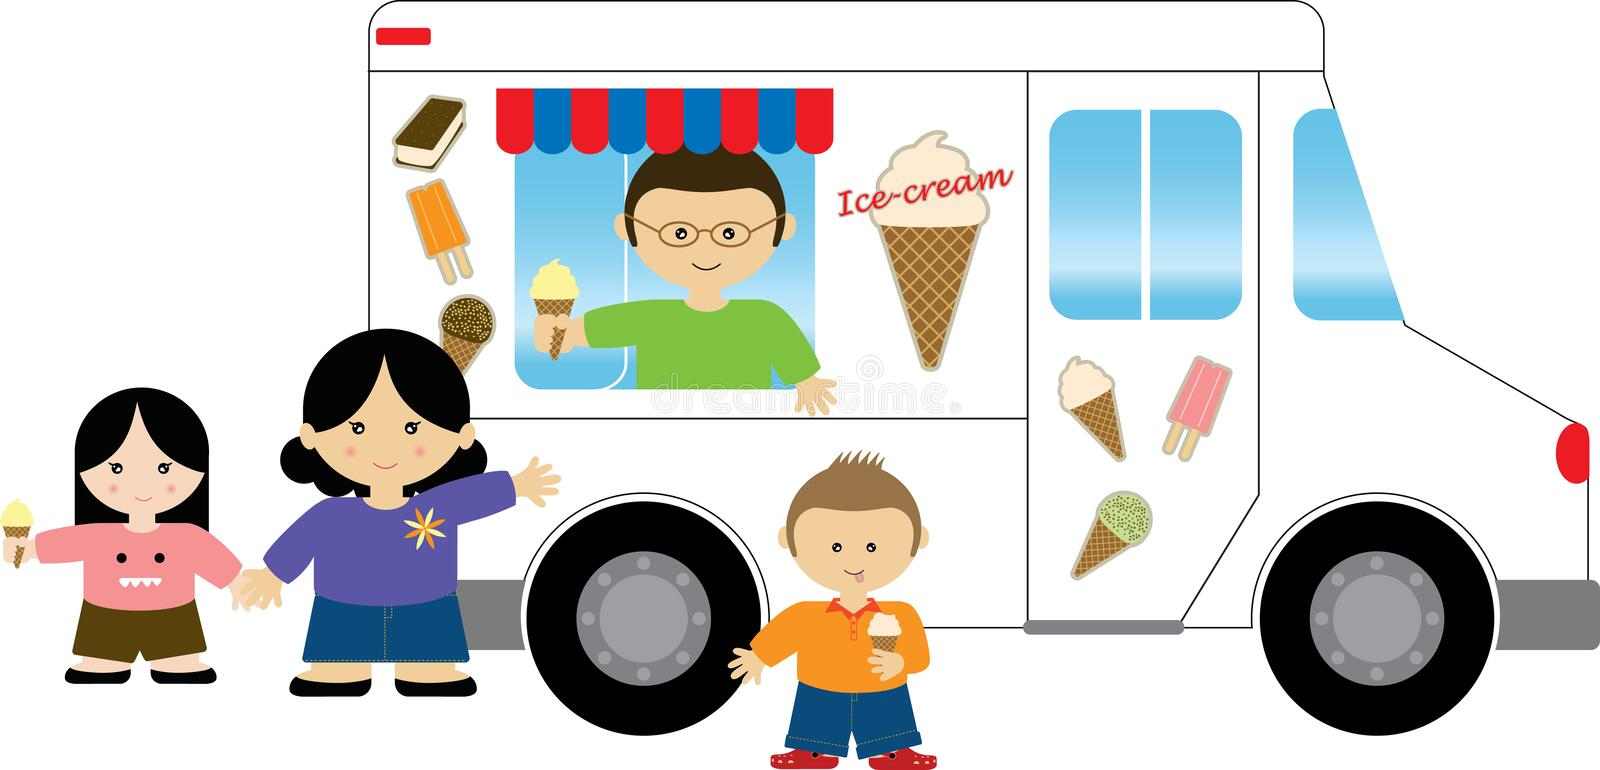 ice cream truck stock illustration illustration of woman 12875387 rh dreamstime com ice cream truck clipart black and white Eating Ice Cream Clip Art